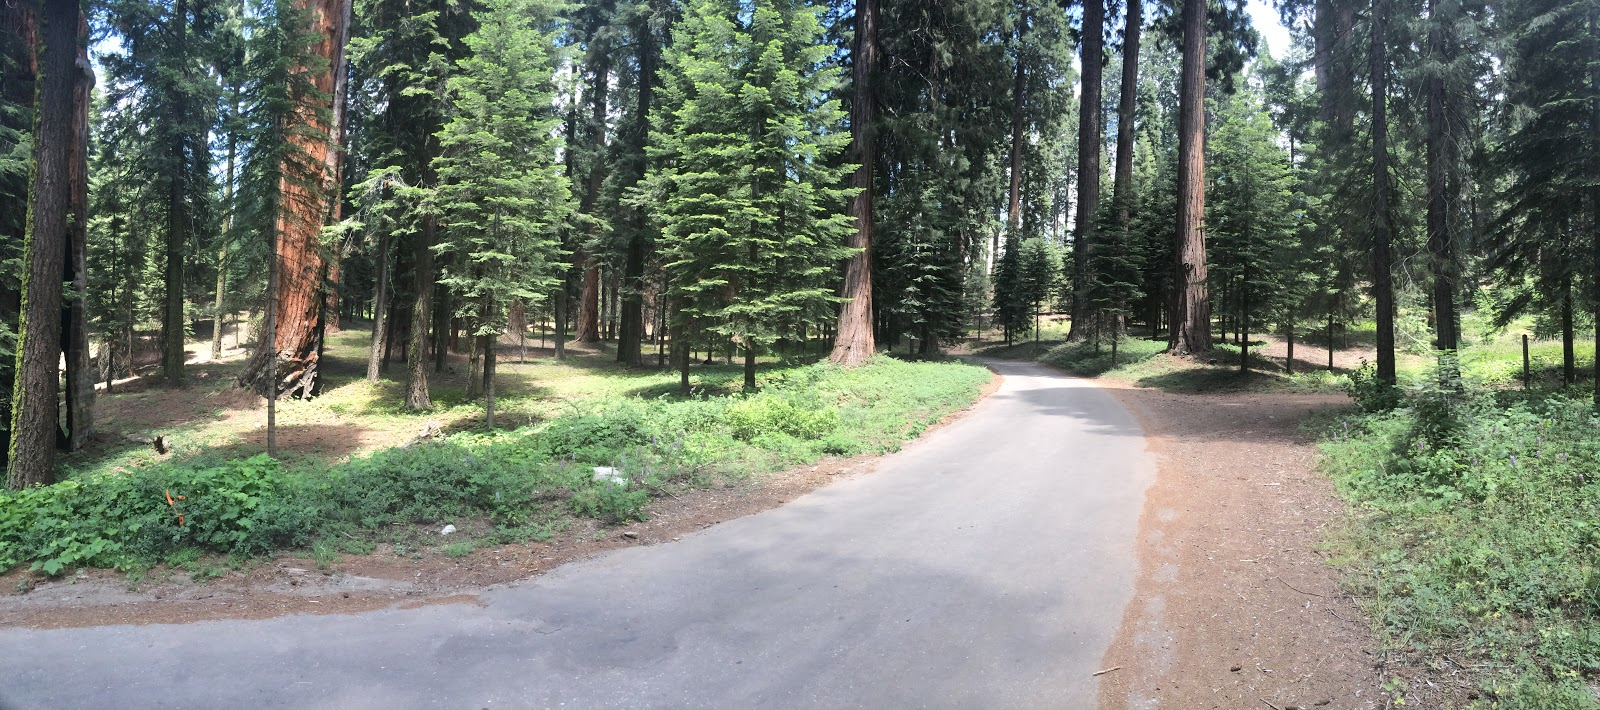 Cycling Bear Creek Road - grove of giant sequoia redwood trees